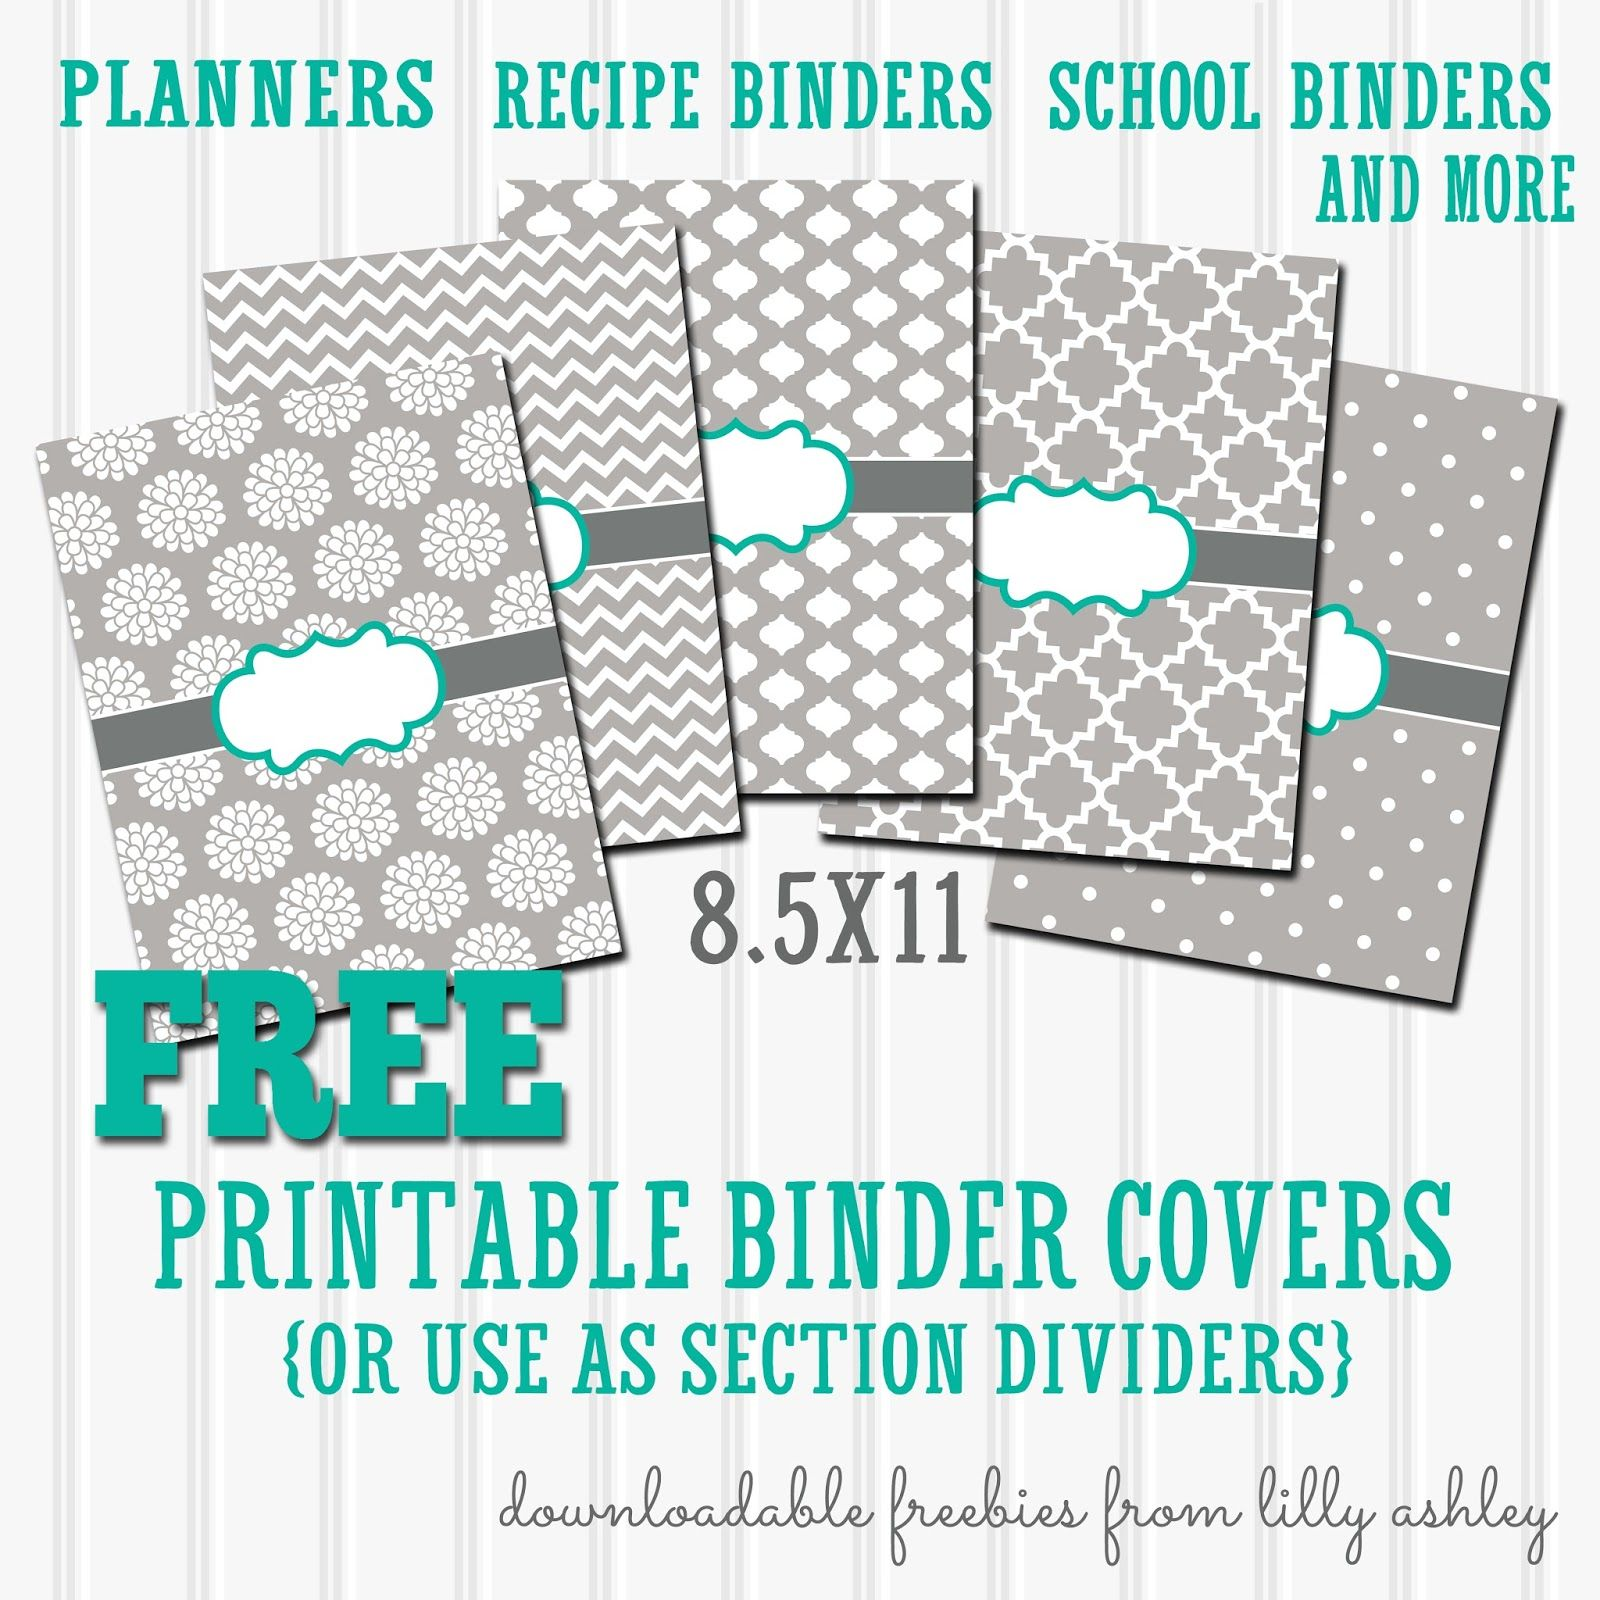 photograph about Binder Cover Templates Printable identify Totally free Binder Handles Printable Preset Preschool Binder handles